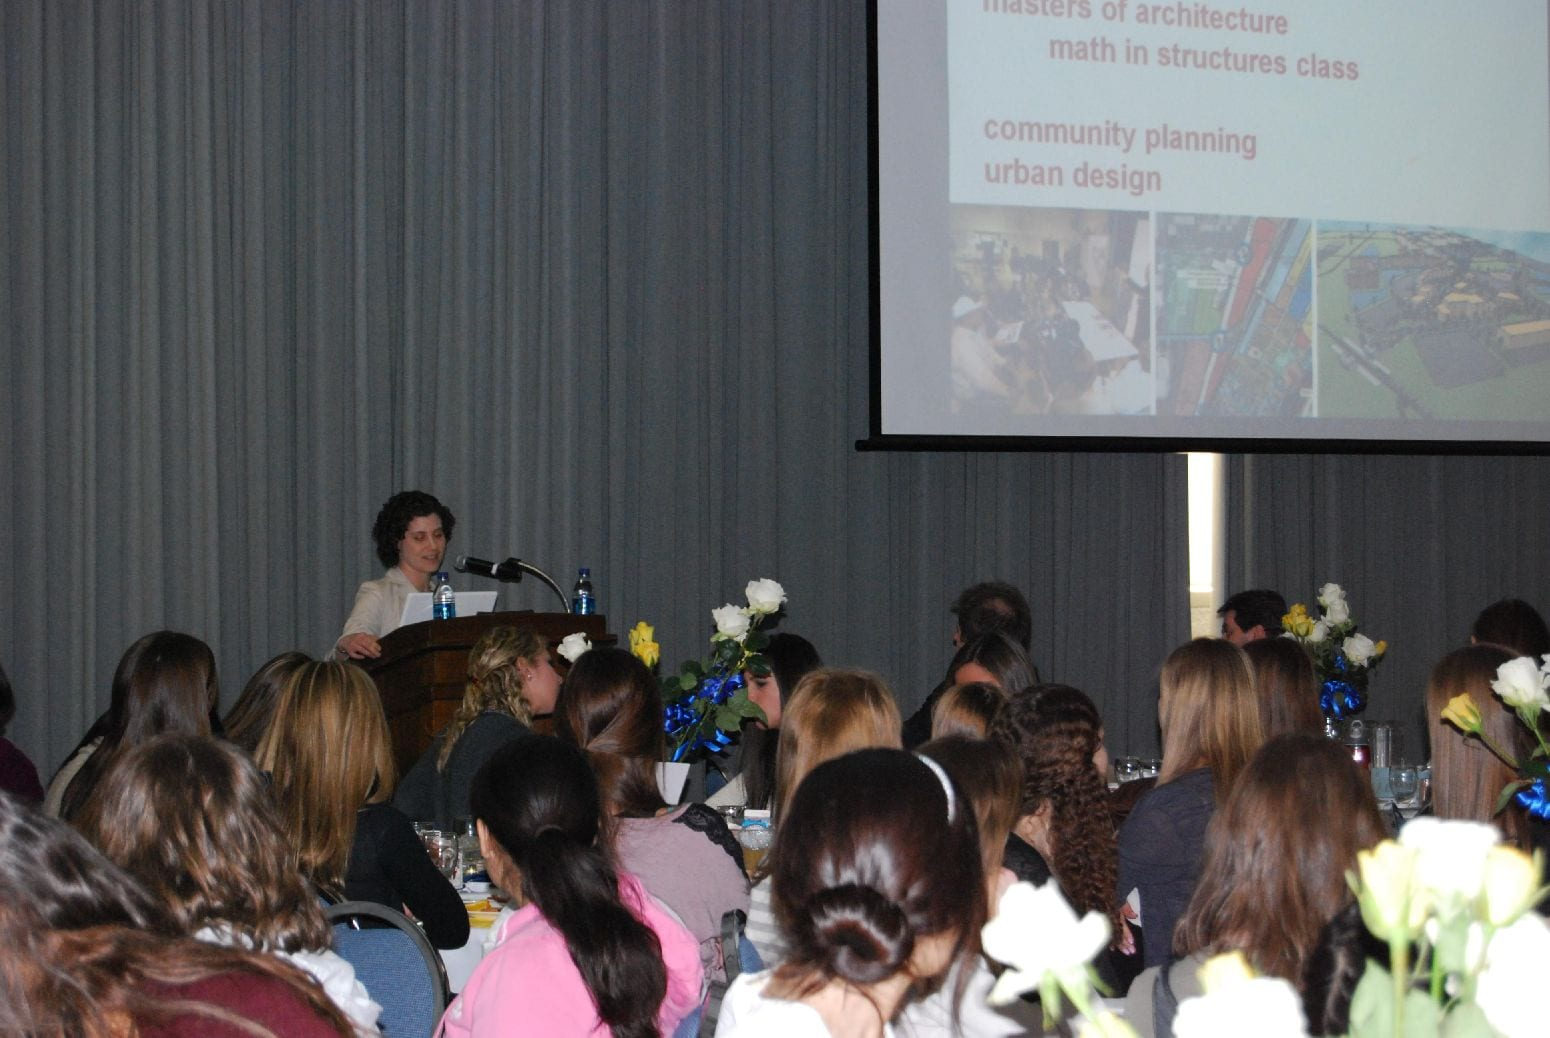 Breakfast with Jodi | Annual breakfast aims to get girls interested in math, science at Glenbrook South High School